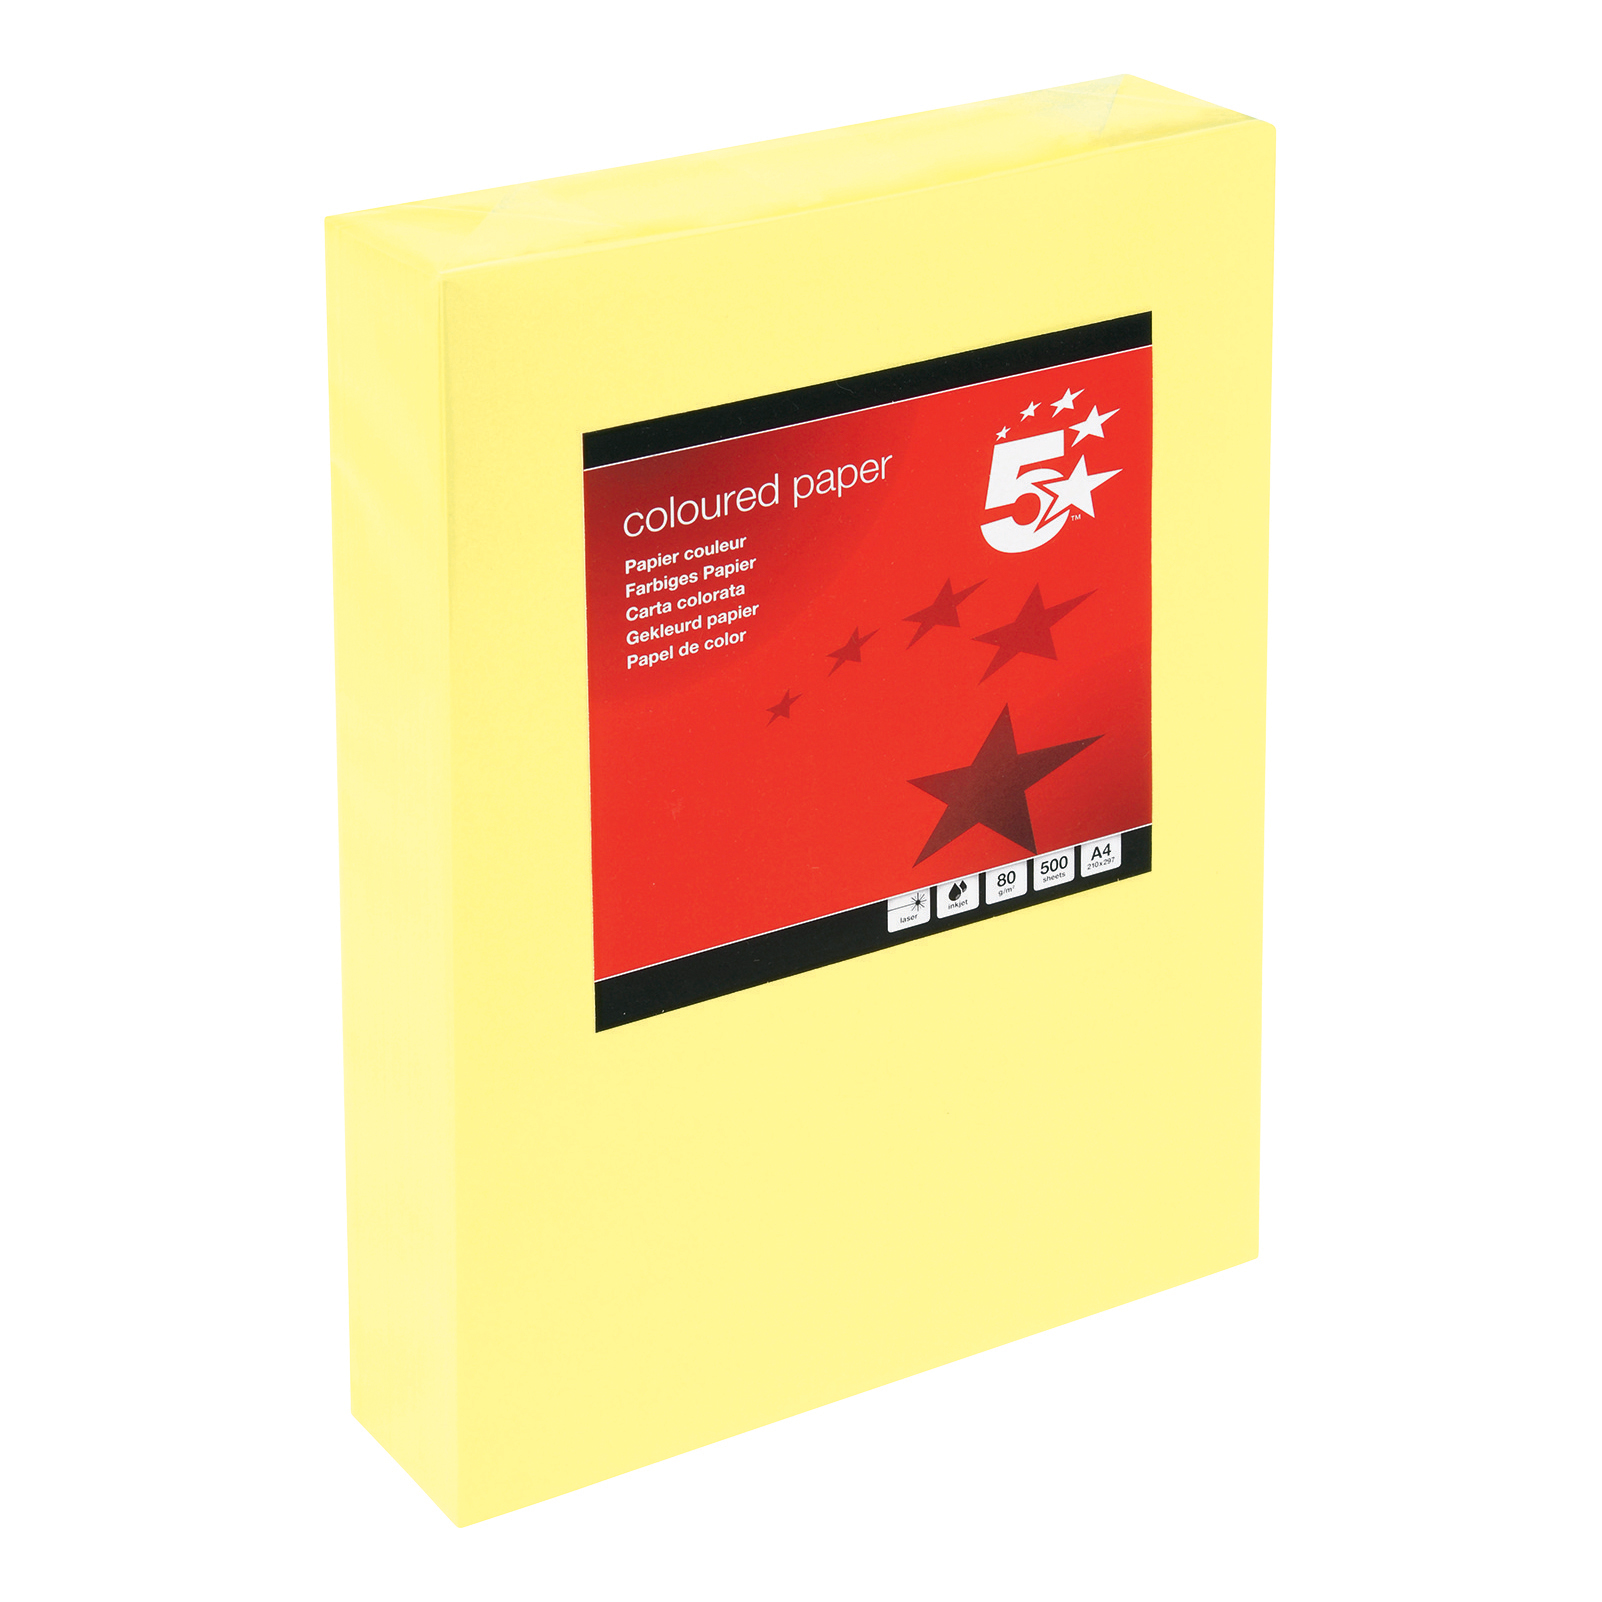 5 Star Office Coloured Copier Paper Multifunctional Ream-Wrapped 80gsm A4 Medium Yellow 500 Sheets